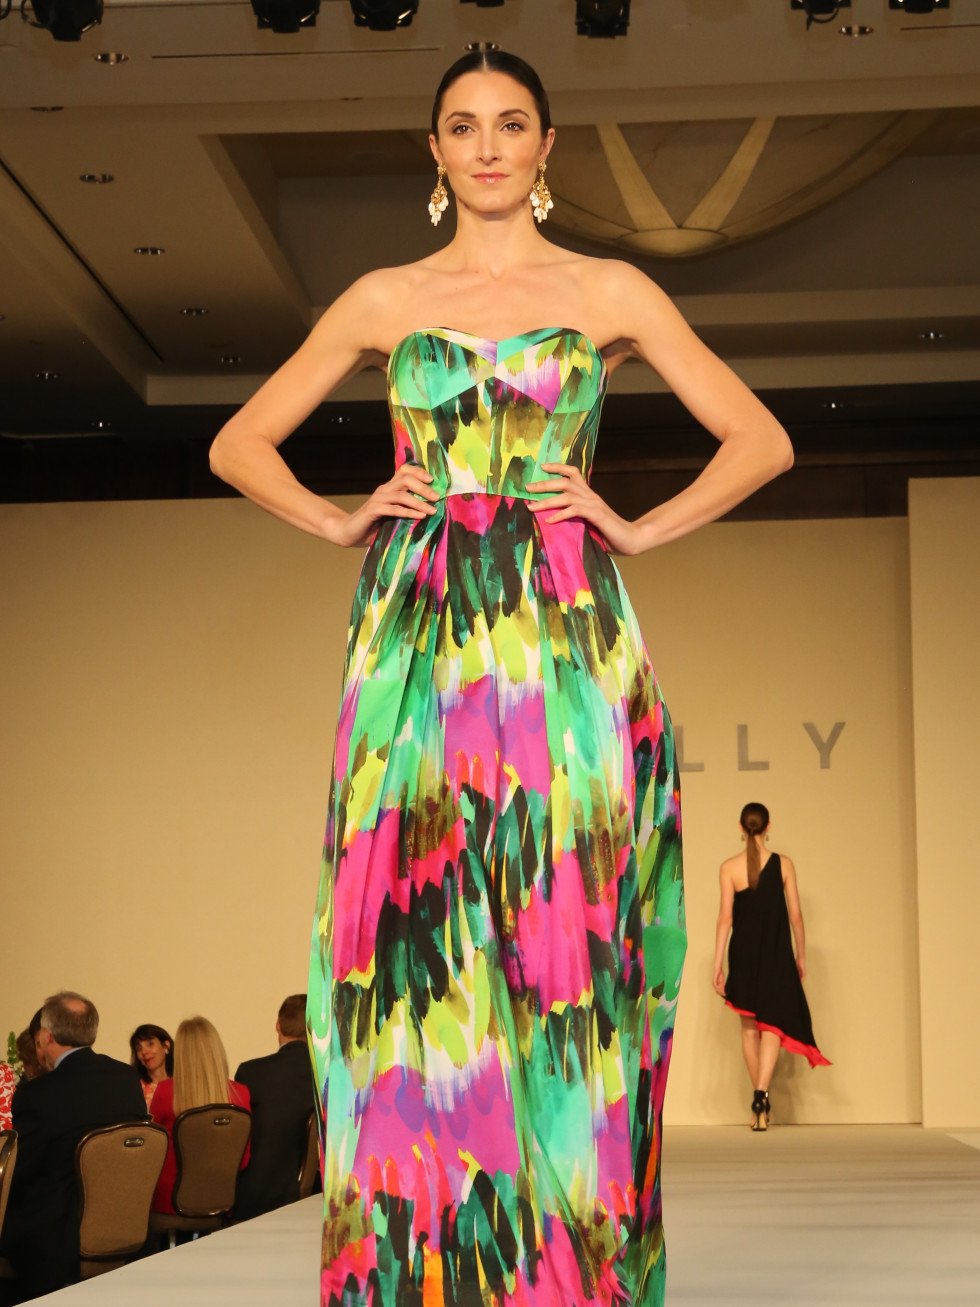 Children's Assessment Center, 4/16, gown by Milly